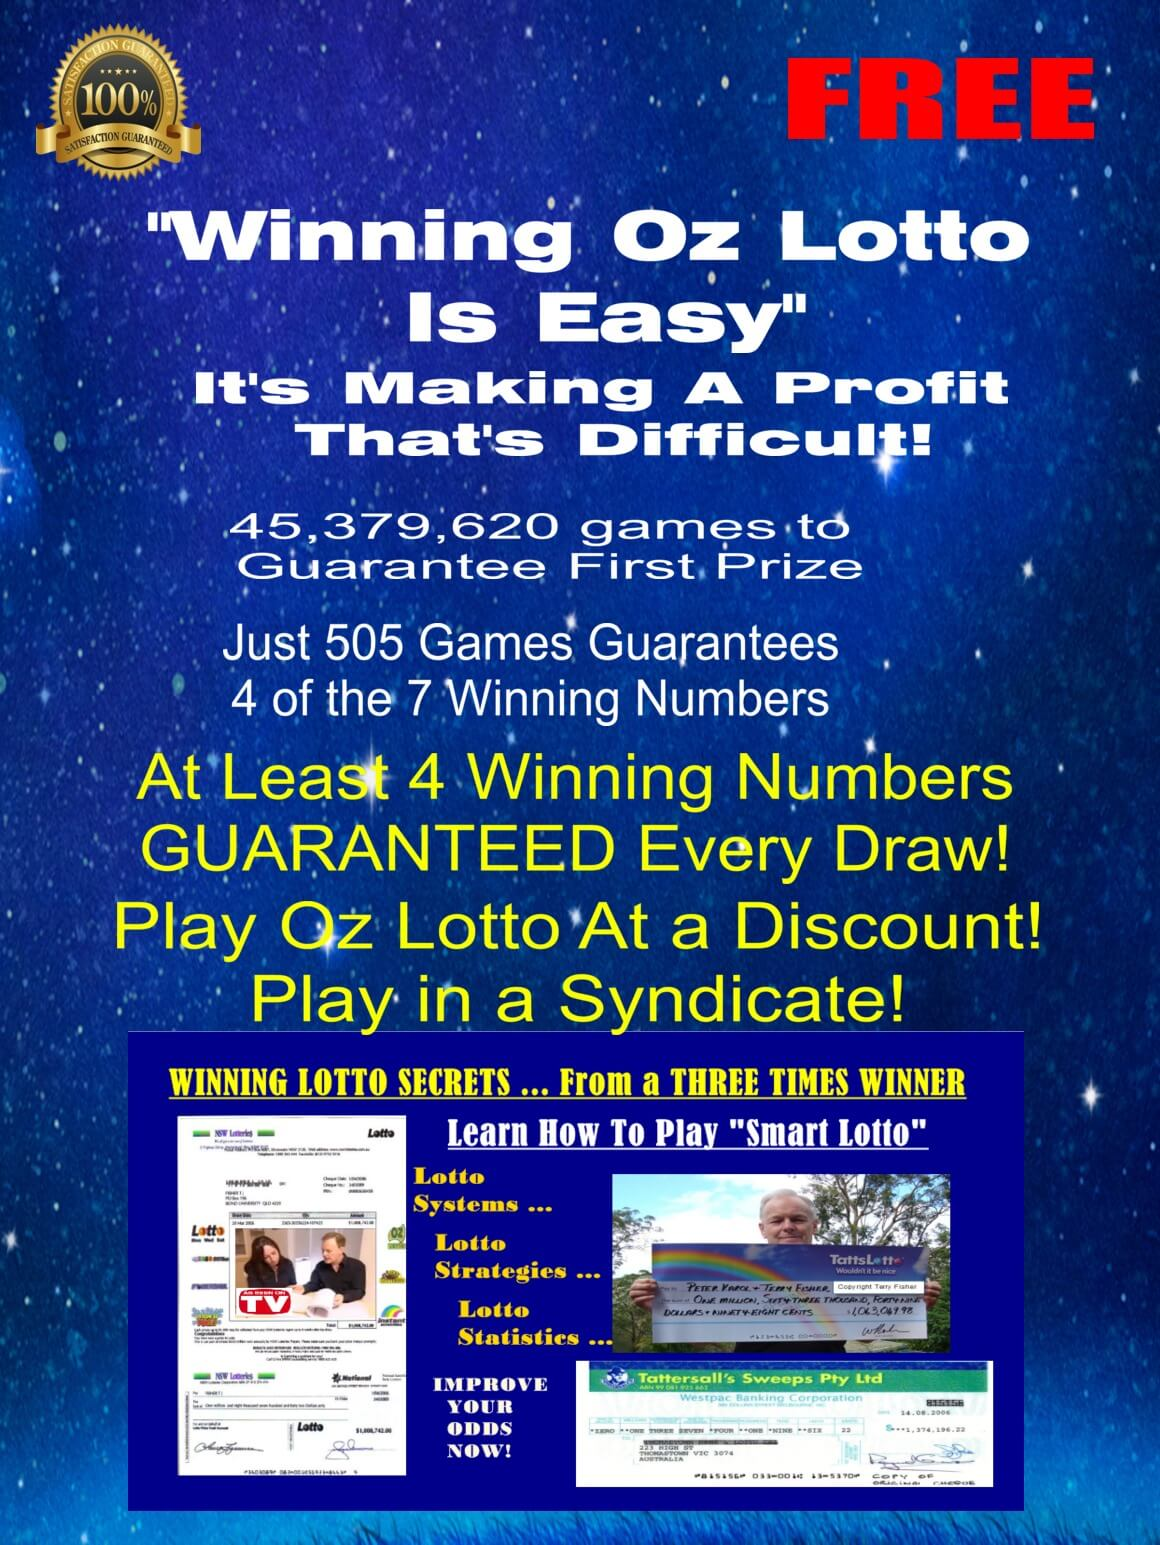 How To Play Oz Lotto